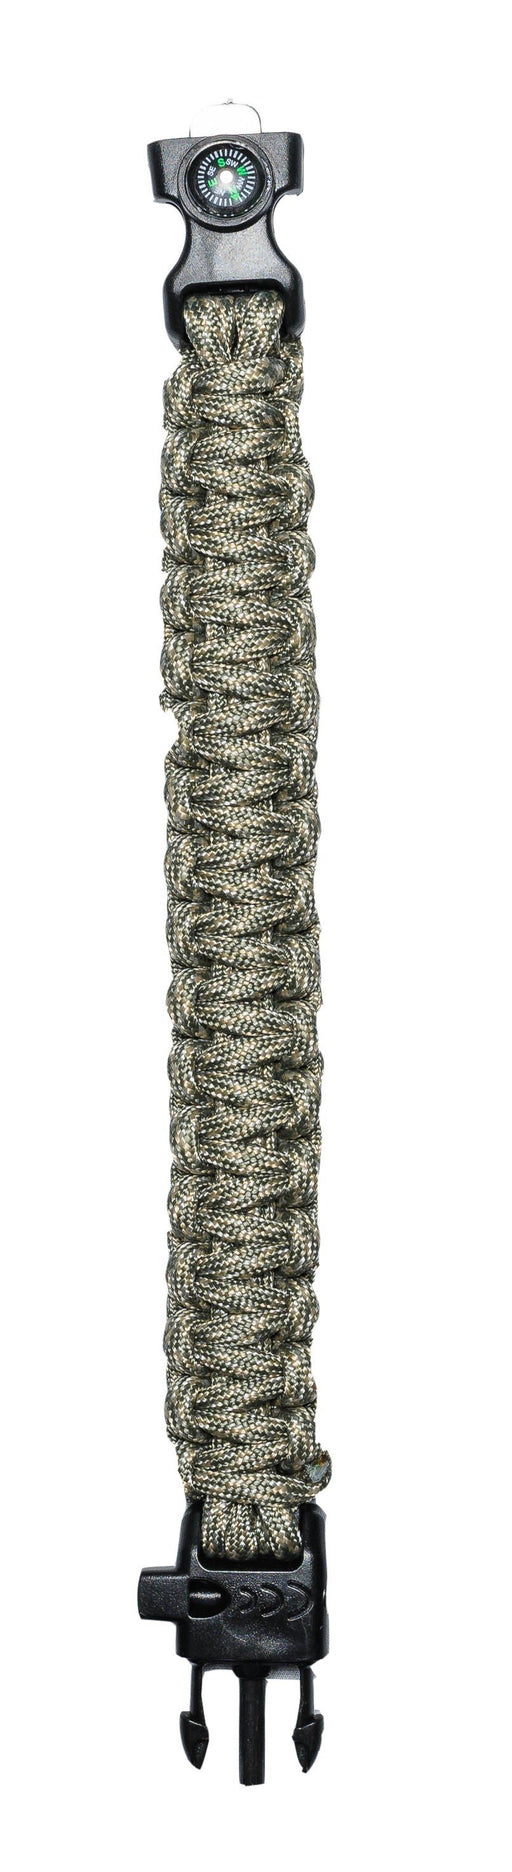 Guardian Paracord Bracelet (Deceit) - Case of 36